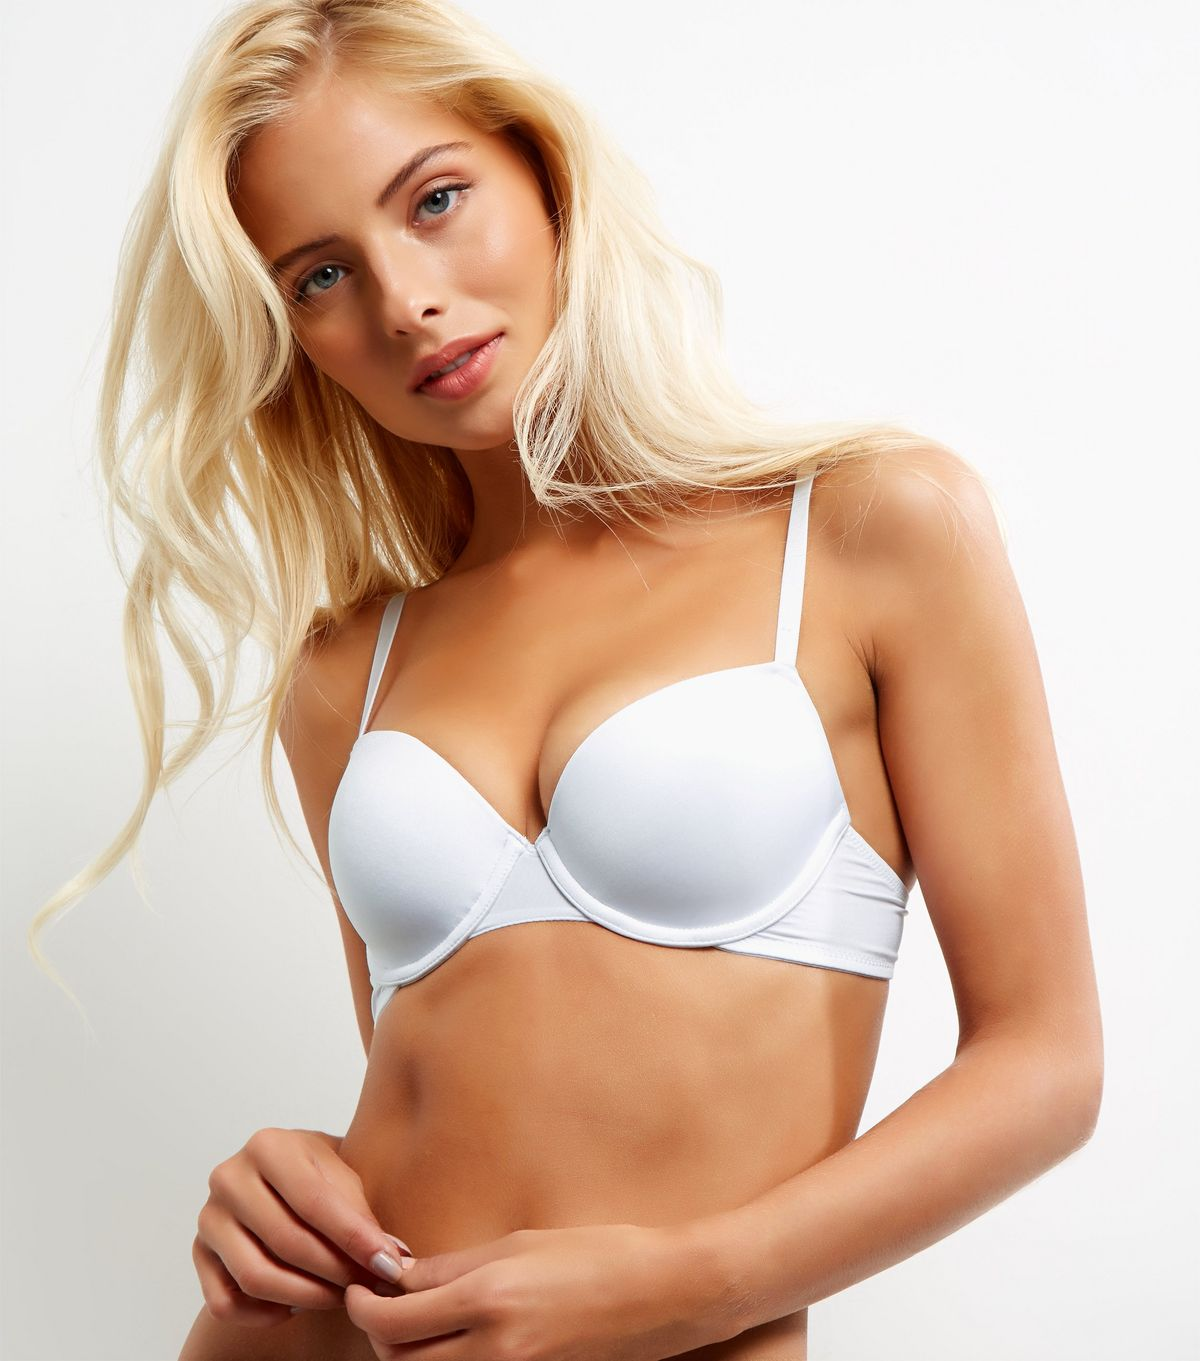 New Look Bras Added To Sale 3 New Look Smug Deals Uk